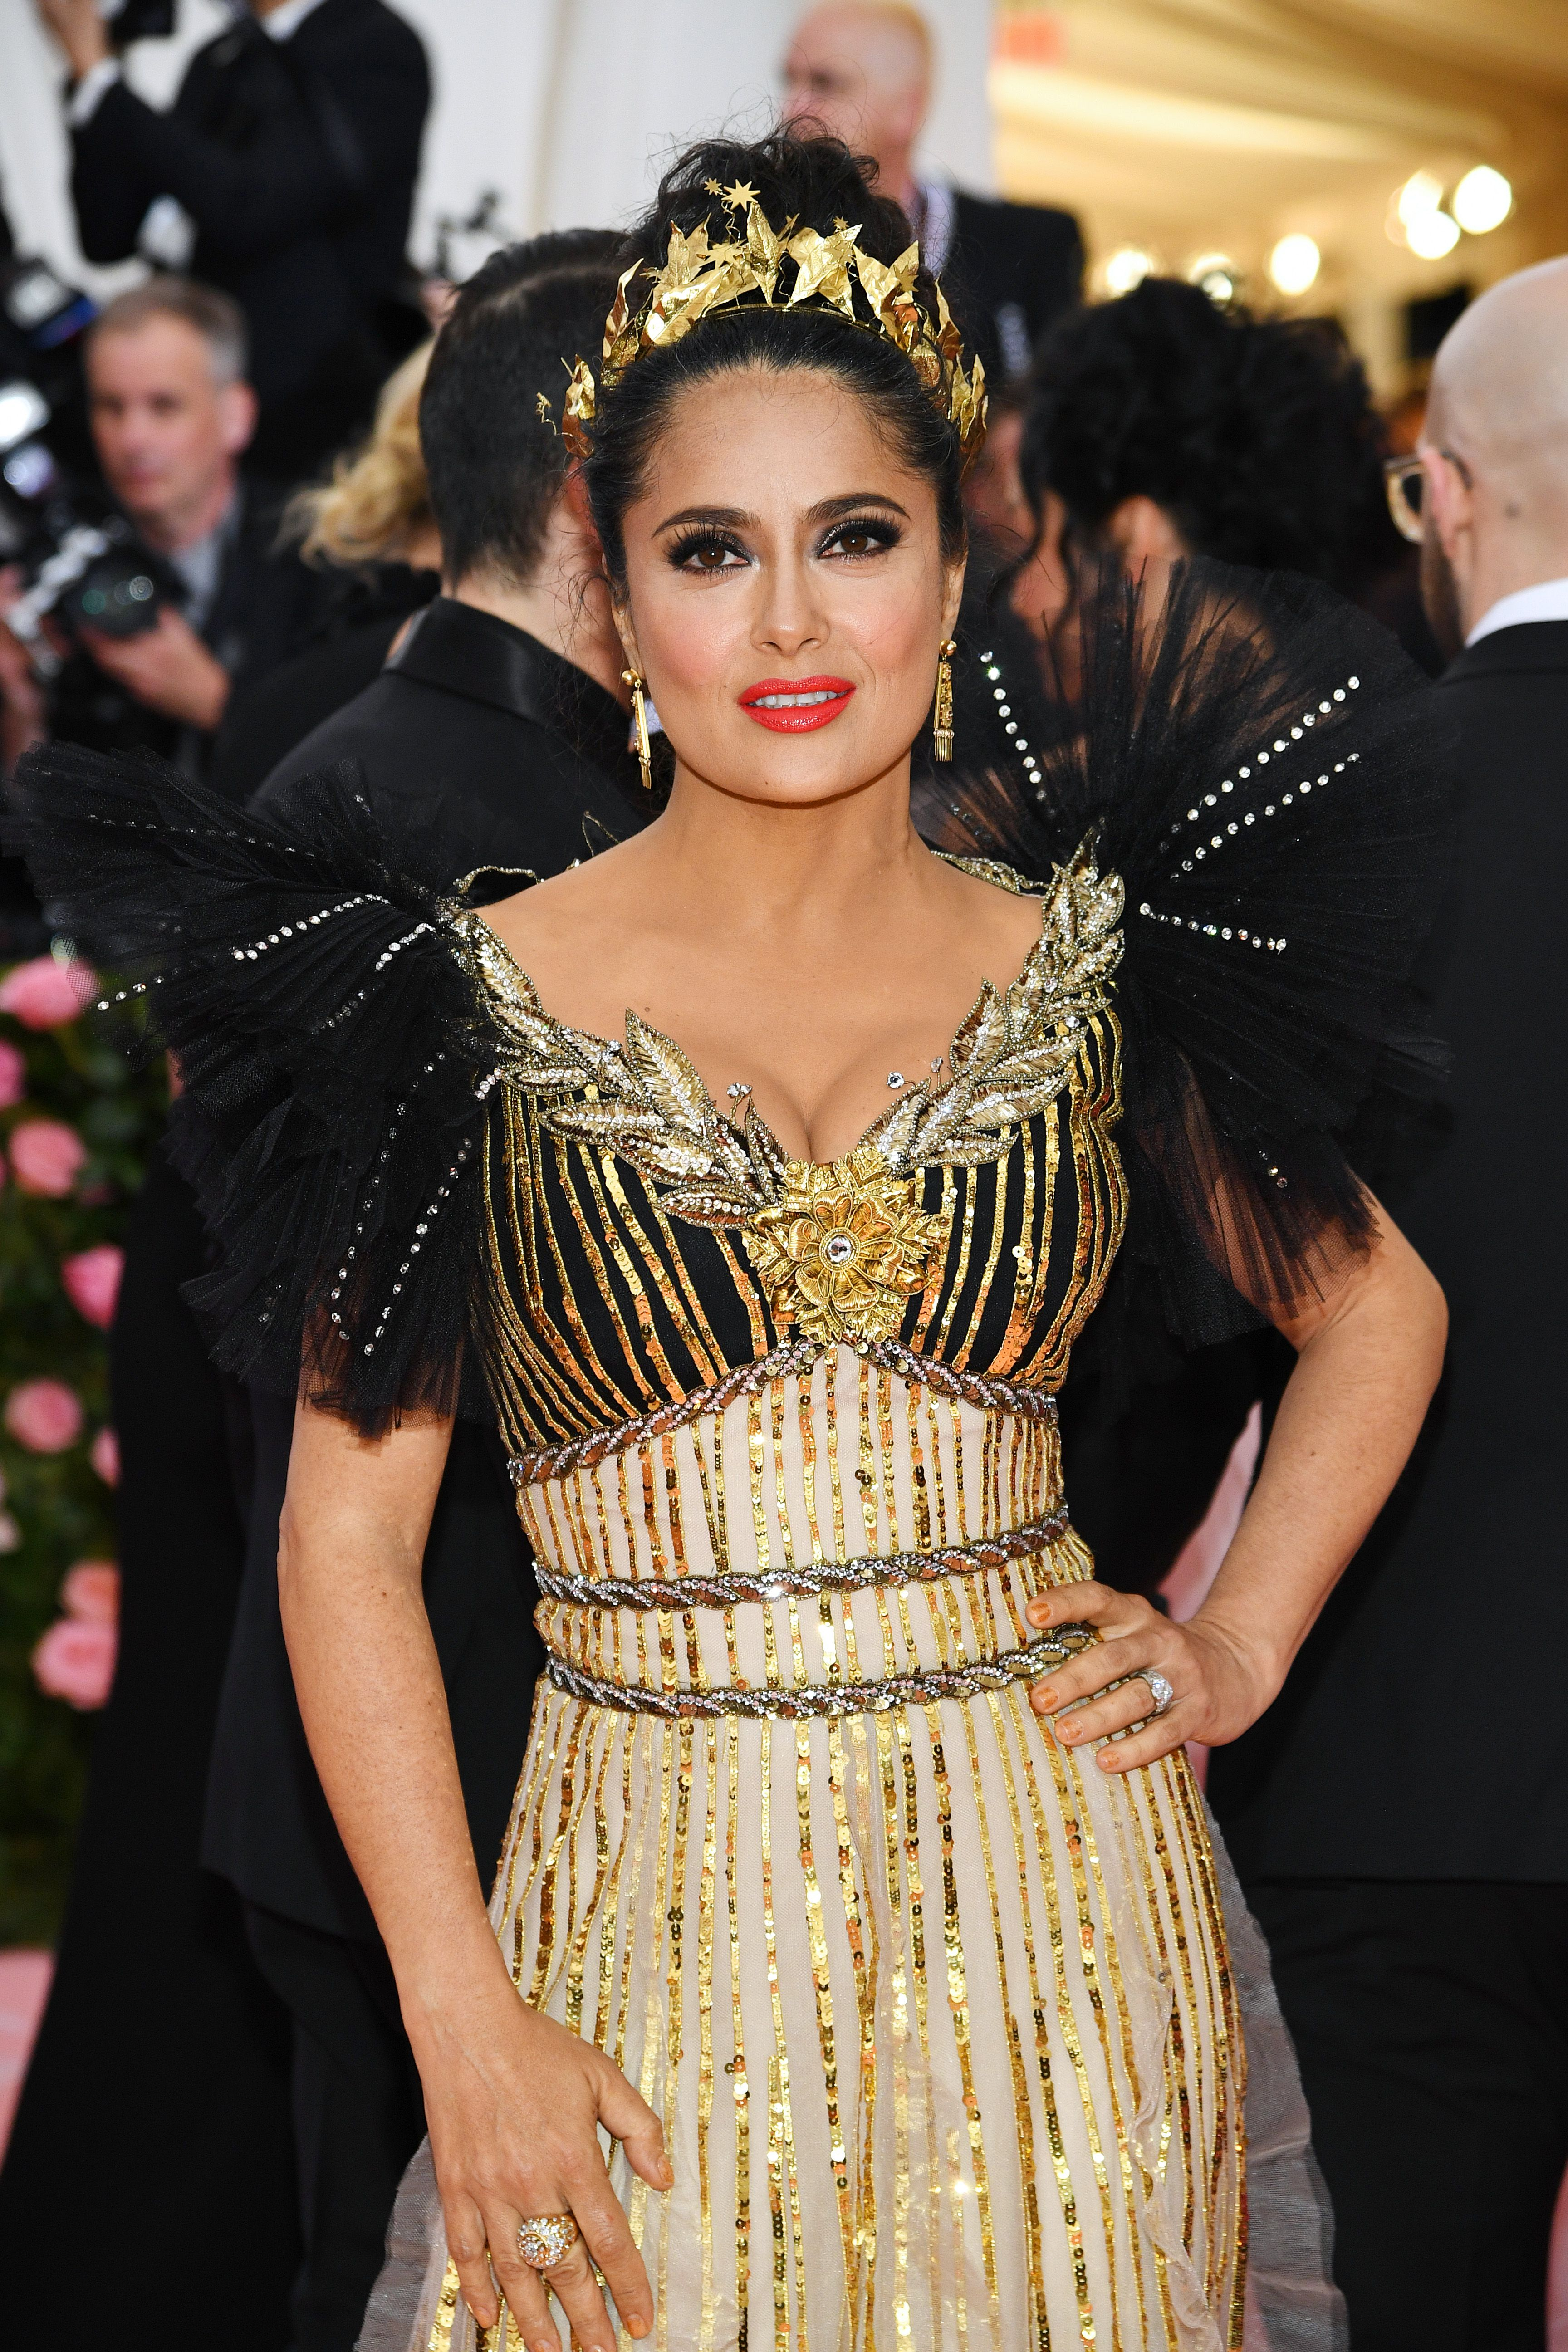 """Salma Hayek Salma Hayek is doing this dramatic eye so damn right. """"For this event with Hayek we chose to create an ultra-dramatic lash look to compliment the amazing dramatic Gucci dress and headpiece,"""" Makeup artist Matthew VanLeeuwen explained."""